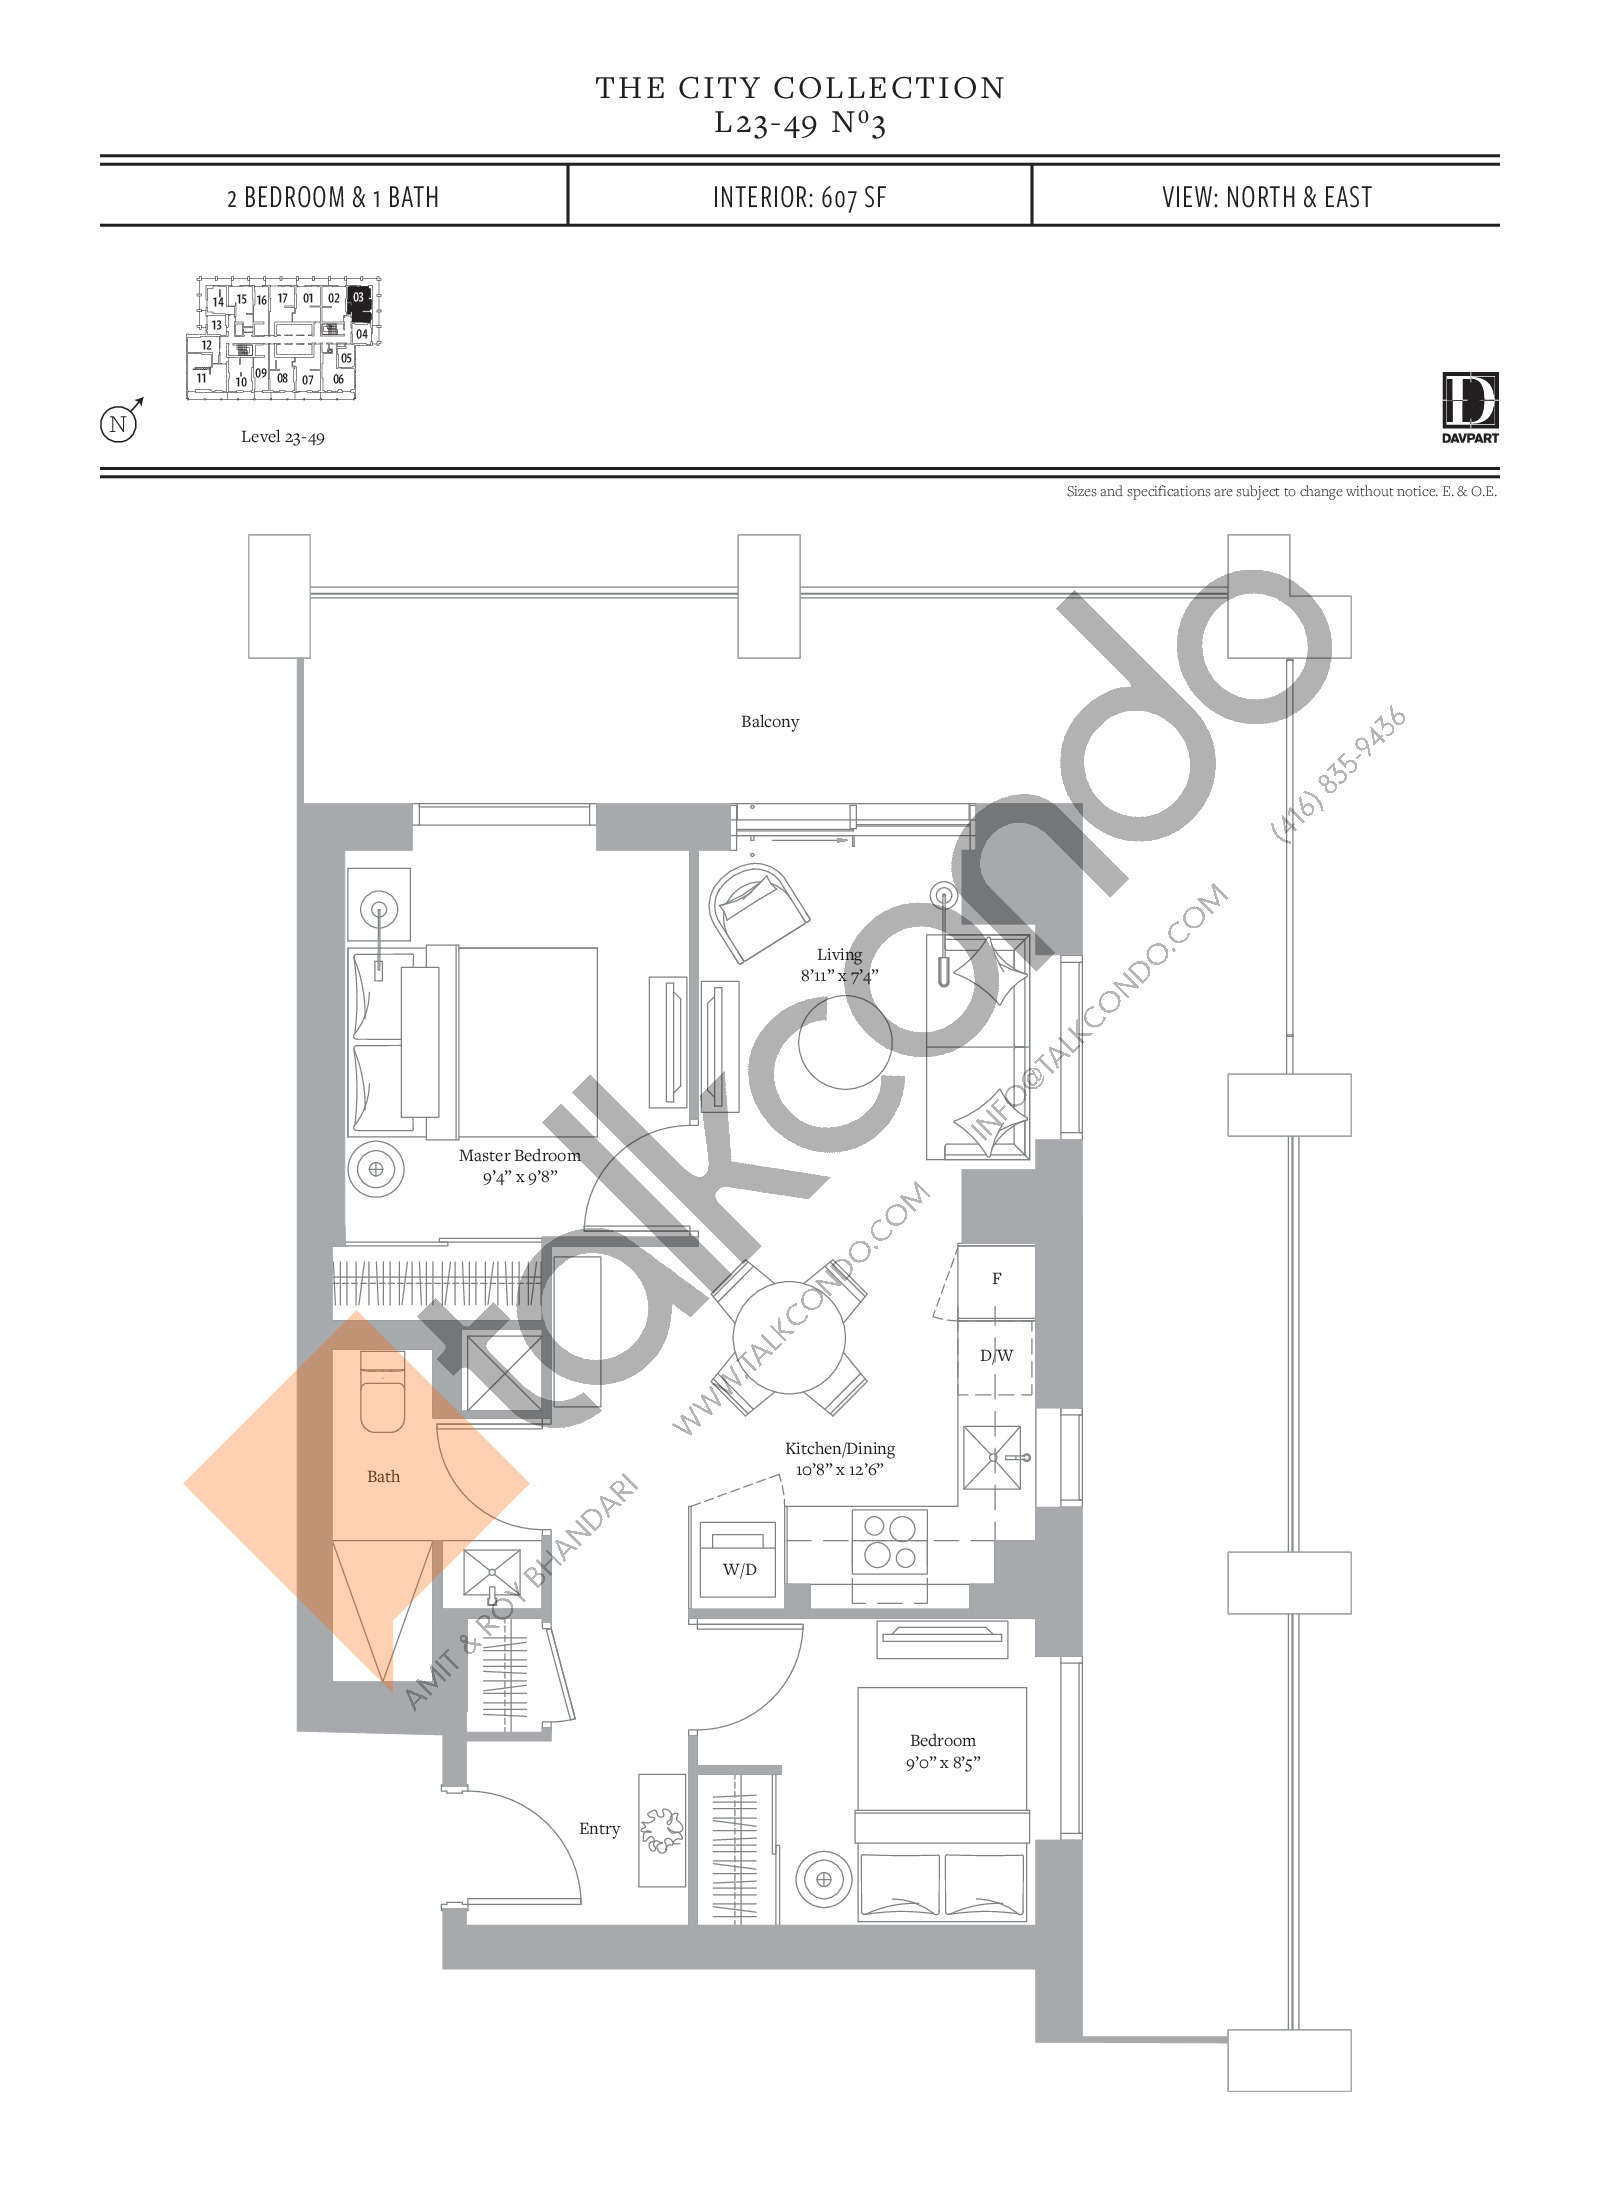 No 3 Floor Plan at The United Bldg. Condos - 607 sq.ft